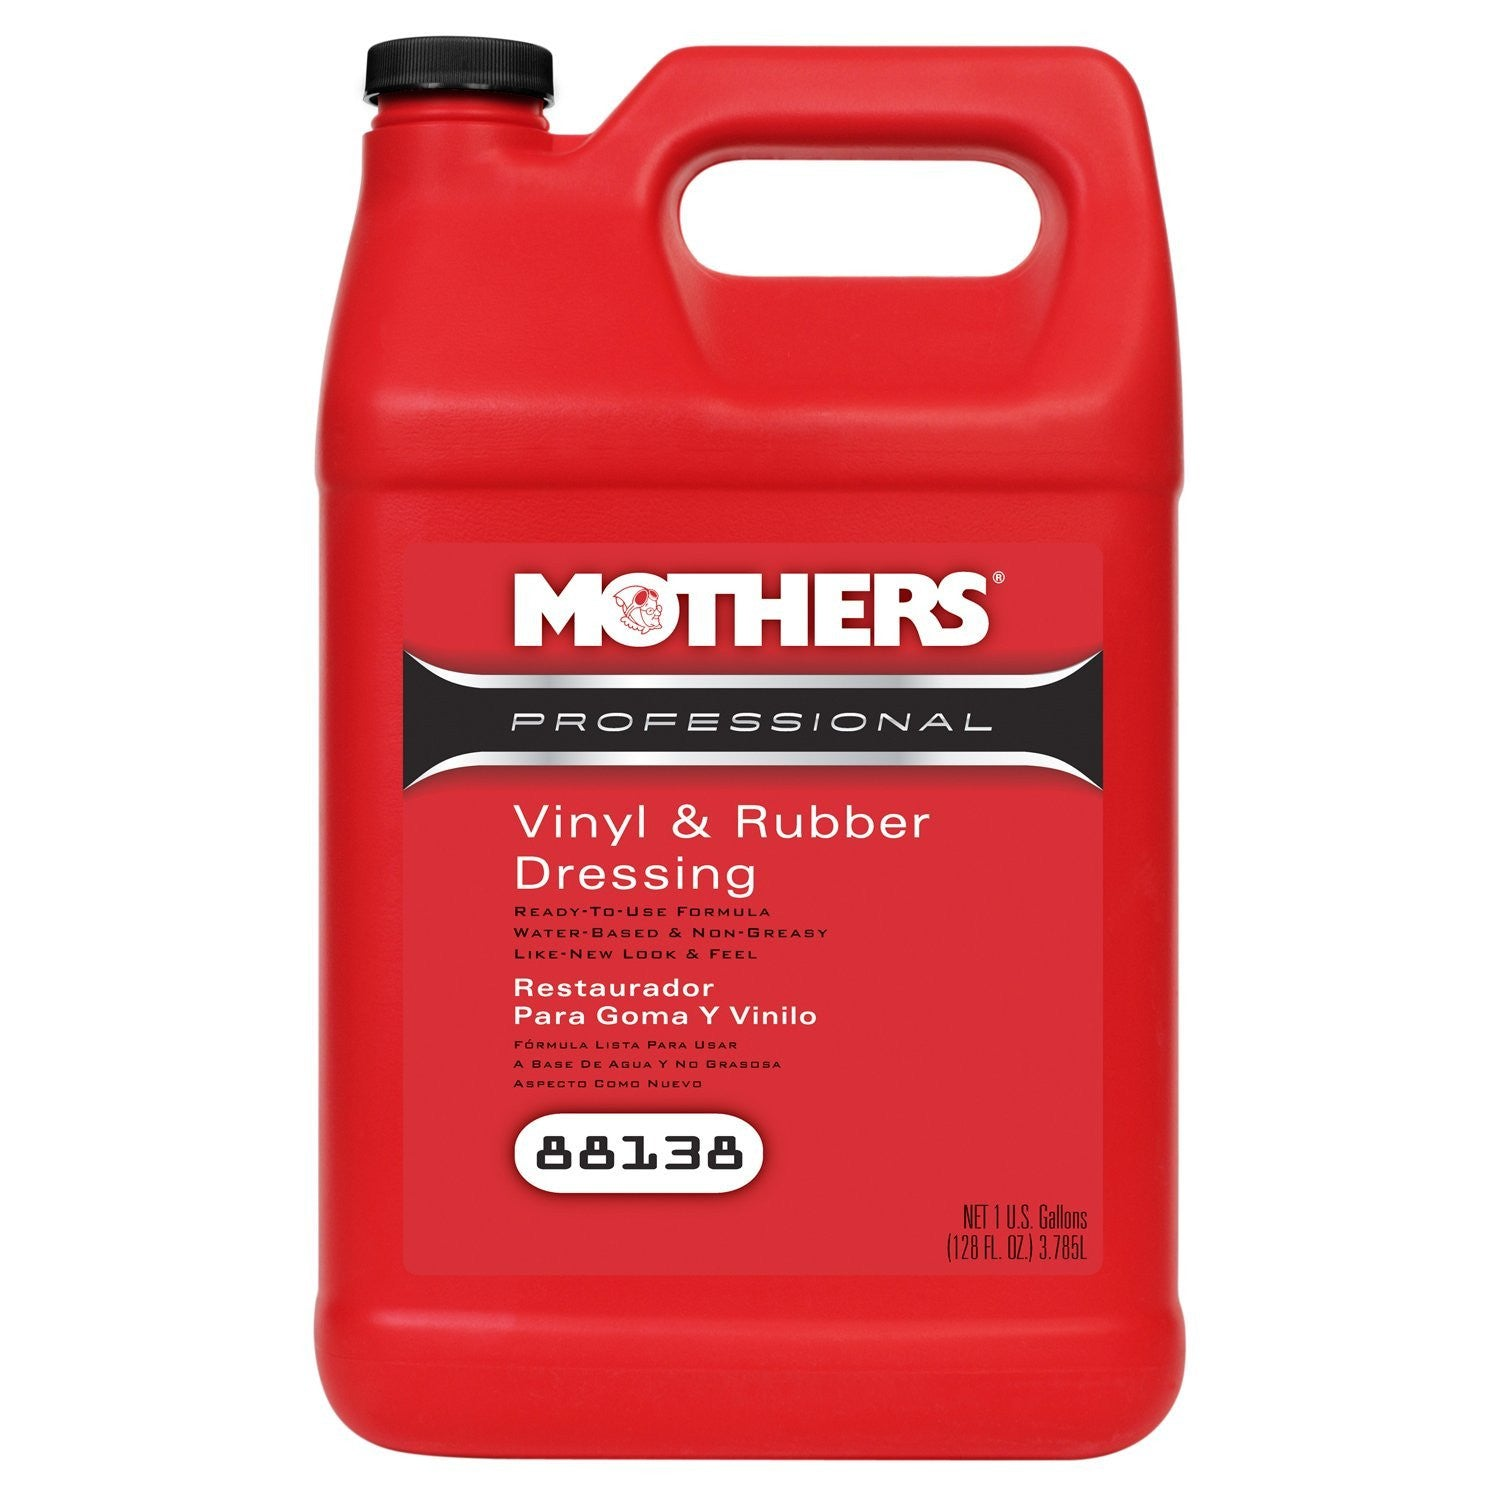 Mothers Vinyl & Rubber Dressing (Gallon)